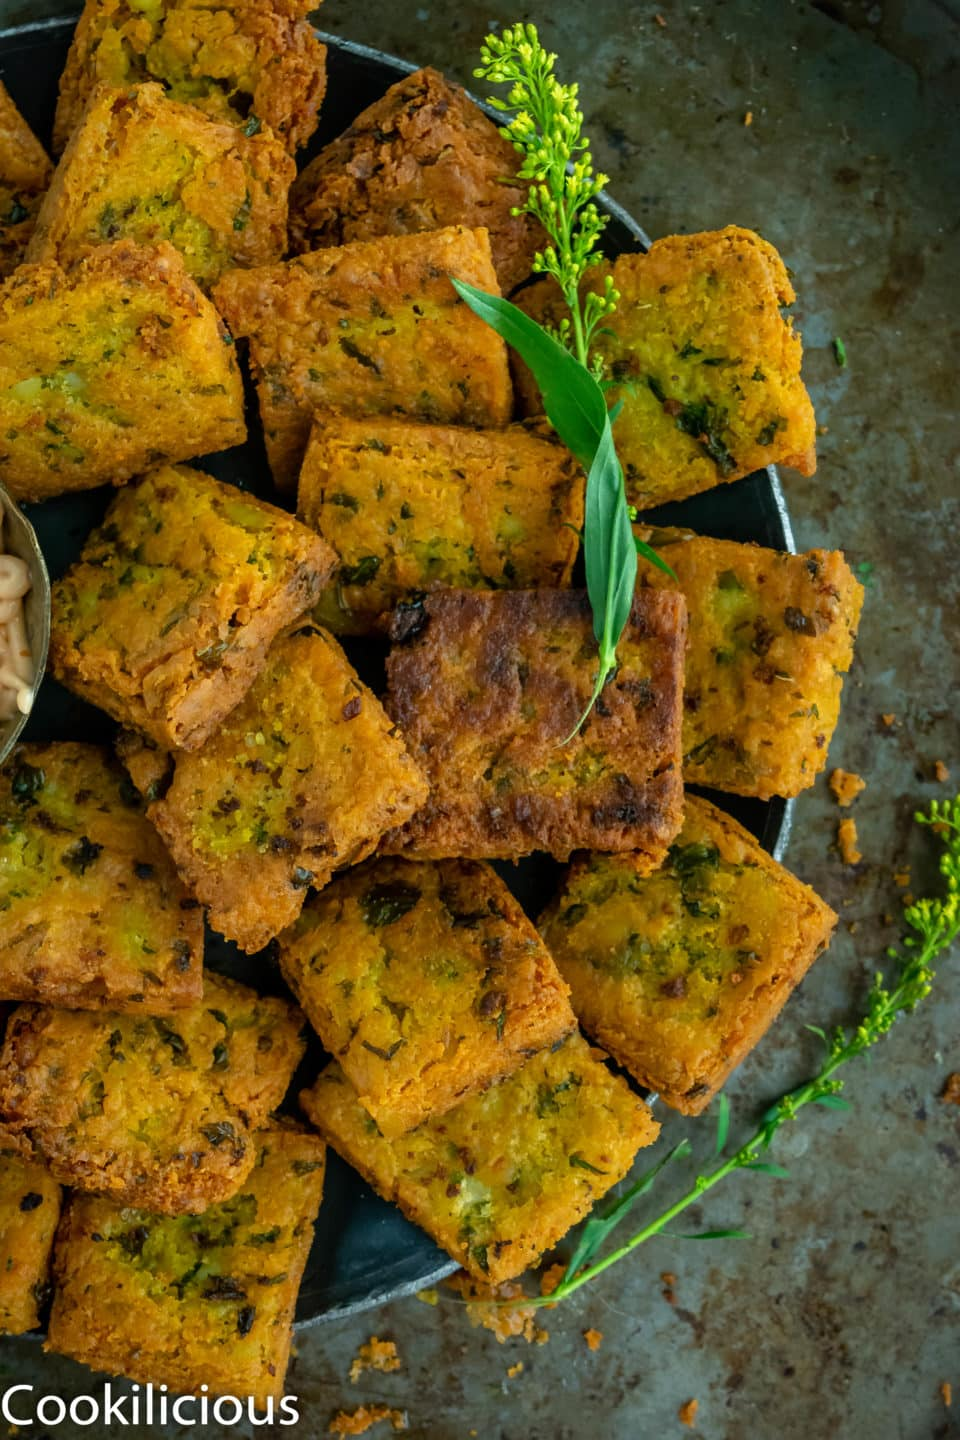 shot of half plate of Fried Besan (Chickpea Flour) & Potato Squares